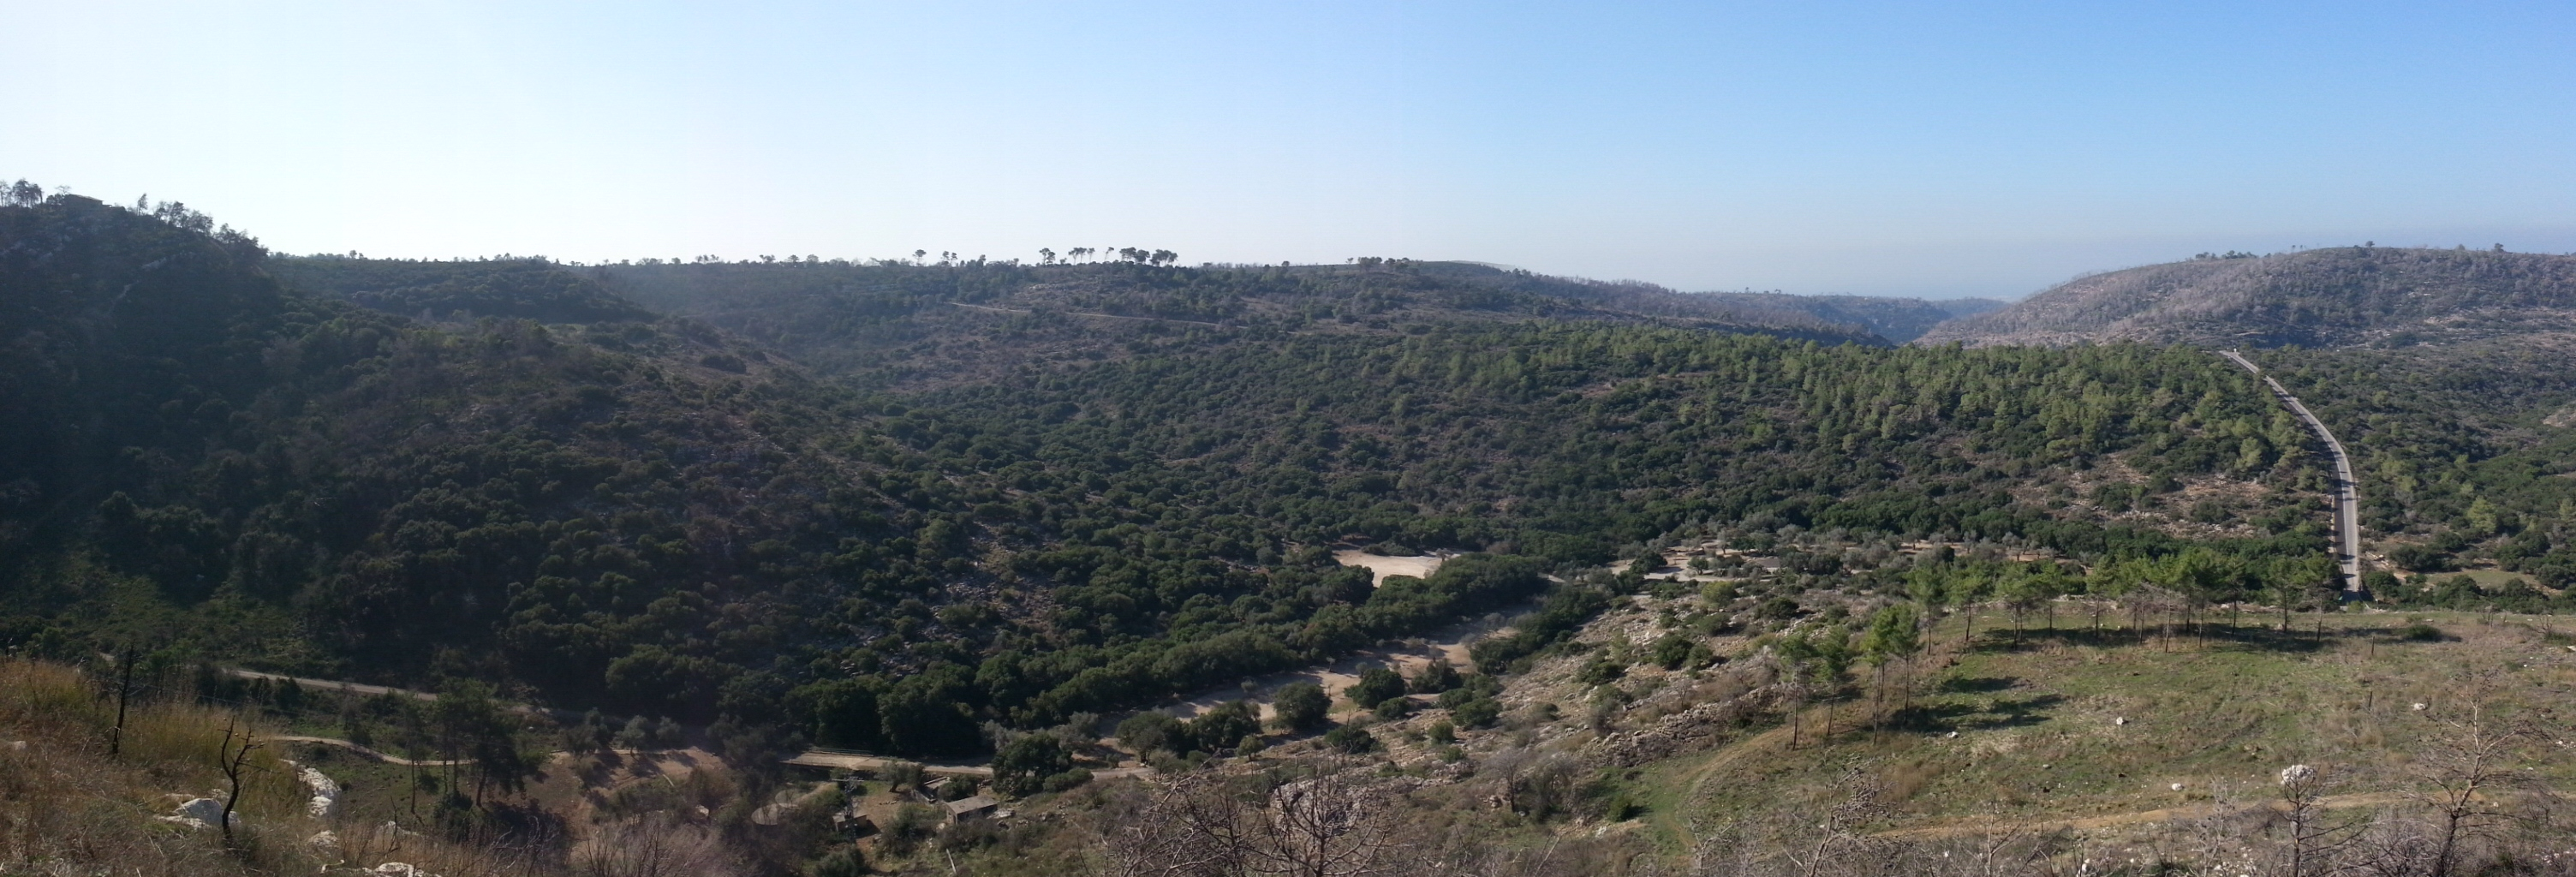 Panorama over Nachal Oren from Mishmar HaCarmel